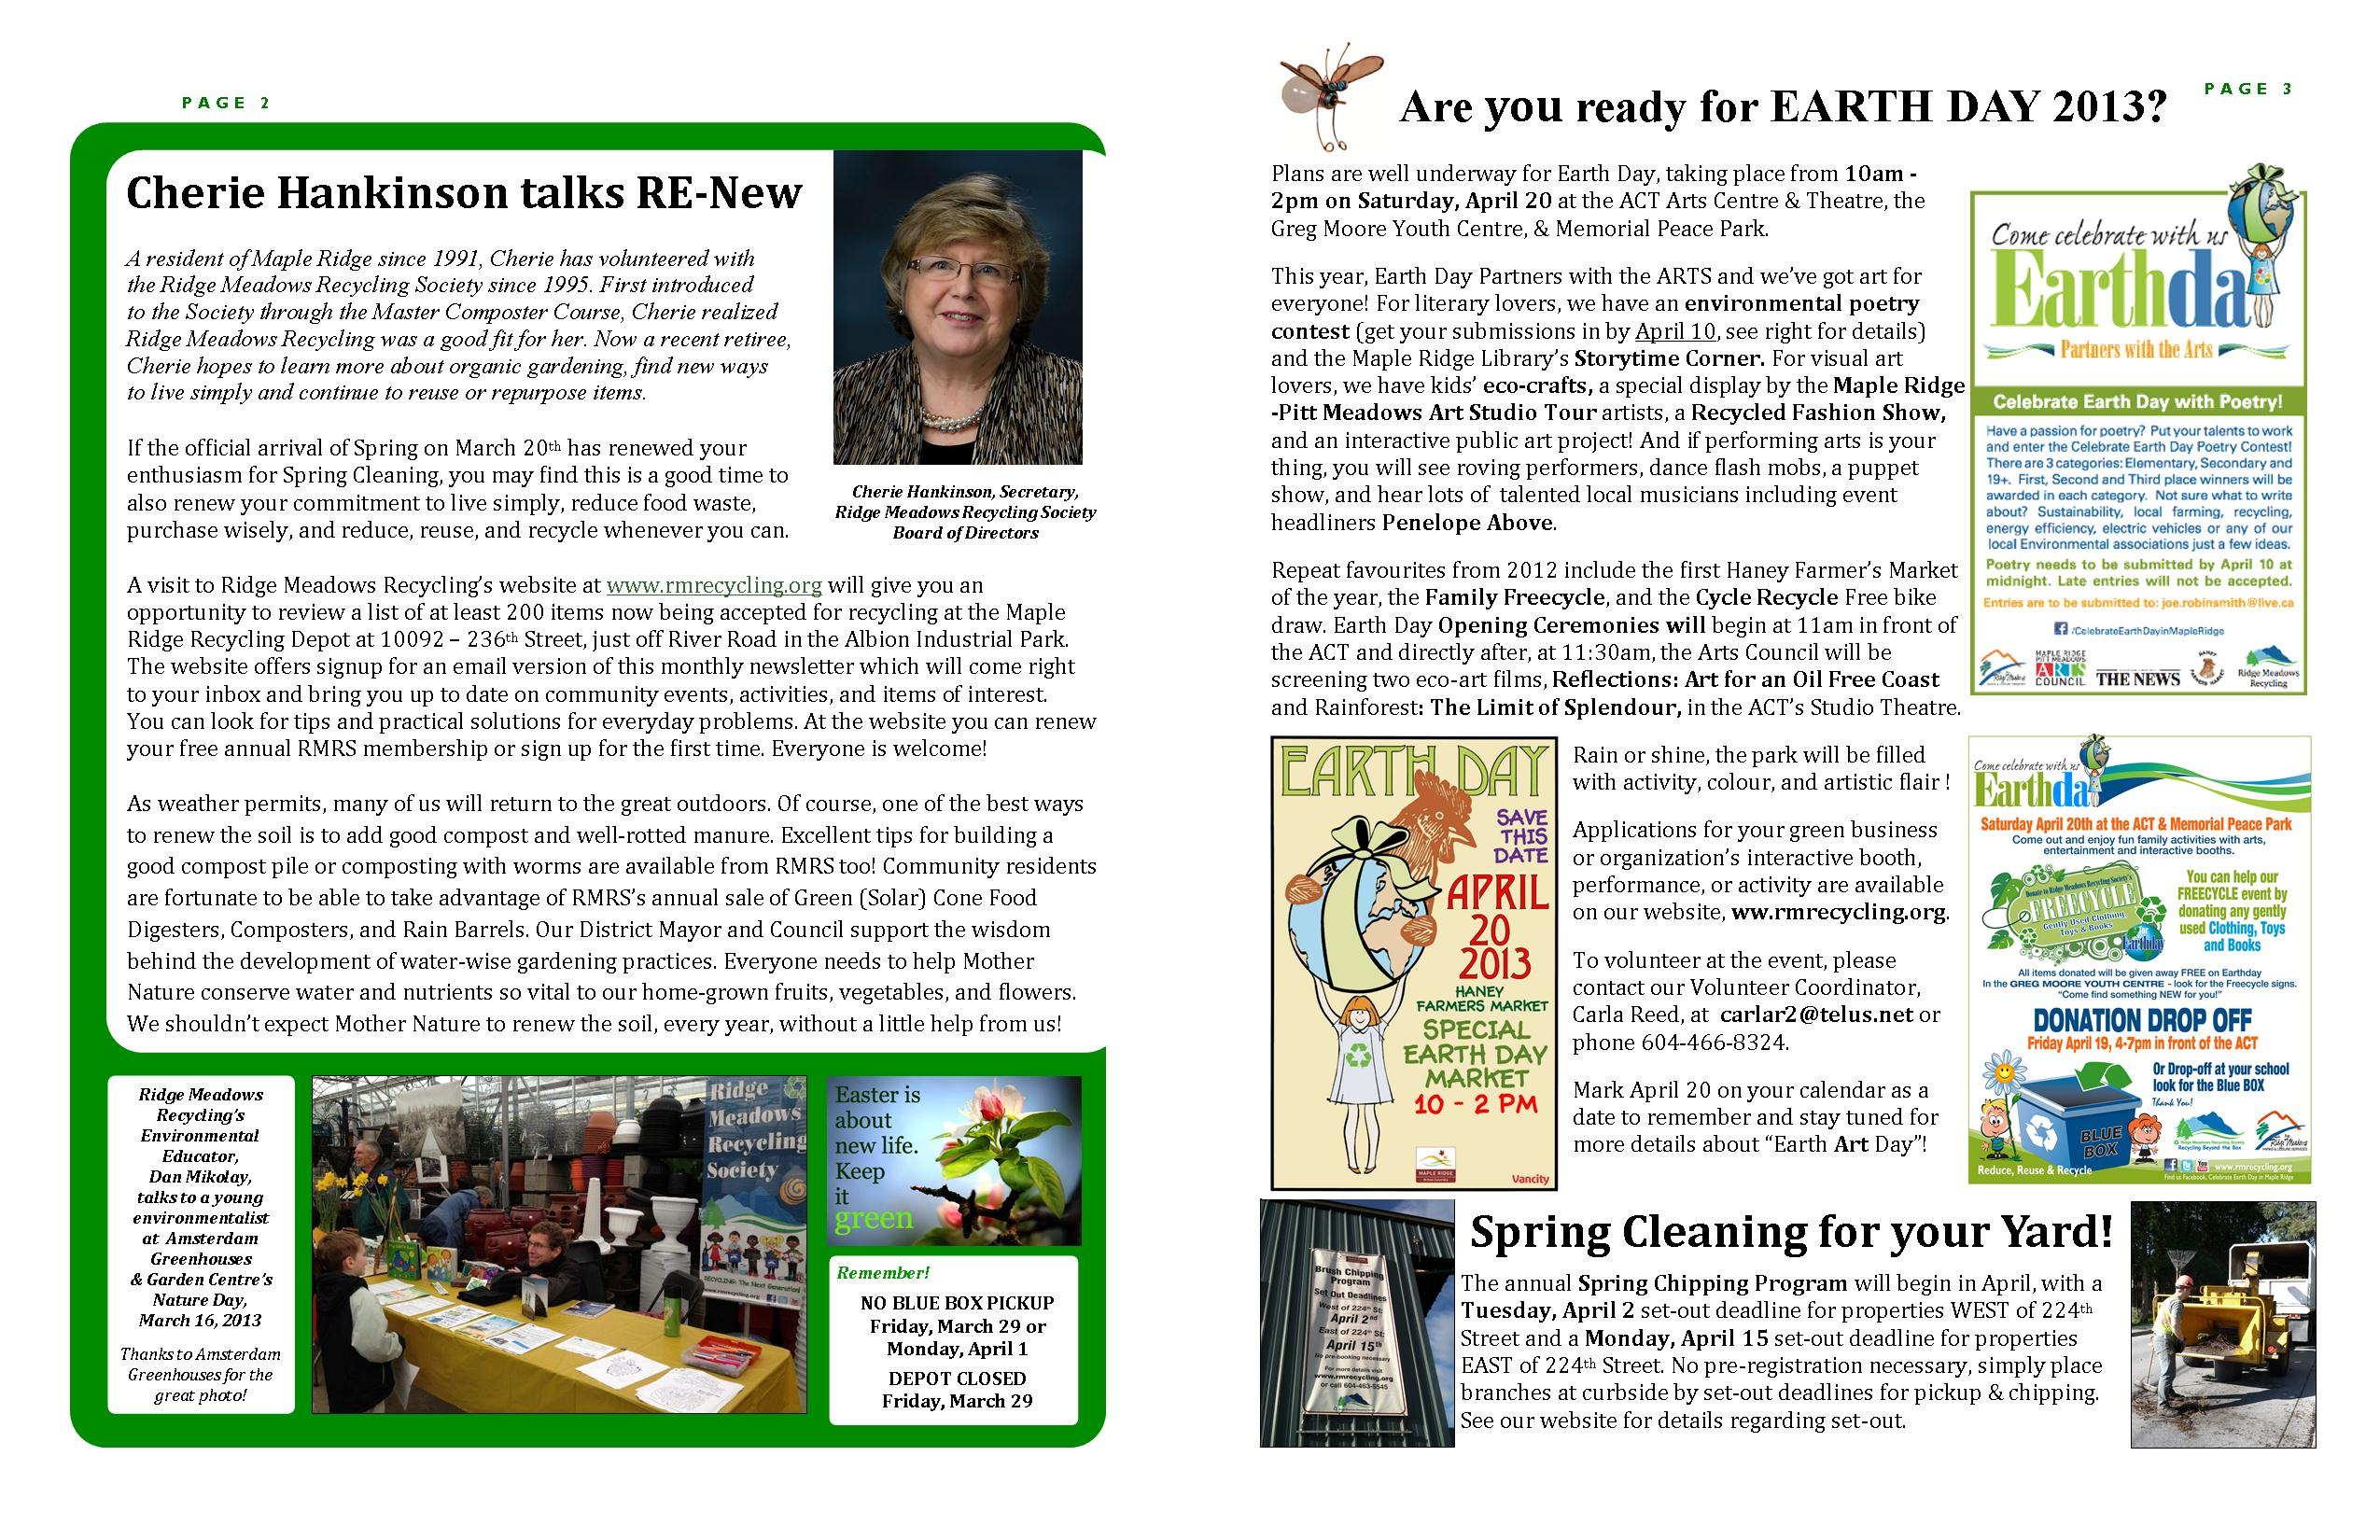 RMRS March, 2013 Newsletter - Pages 2-3